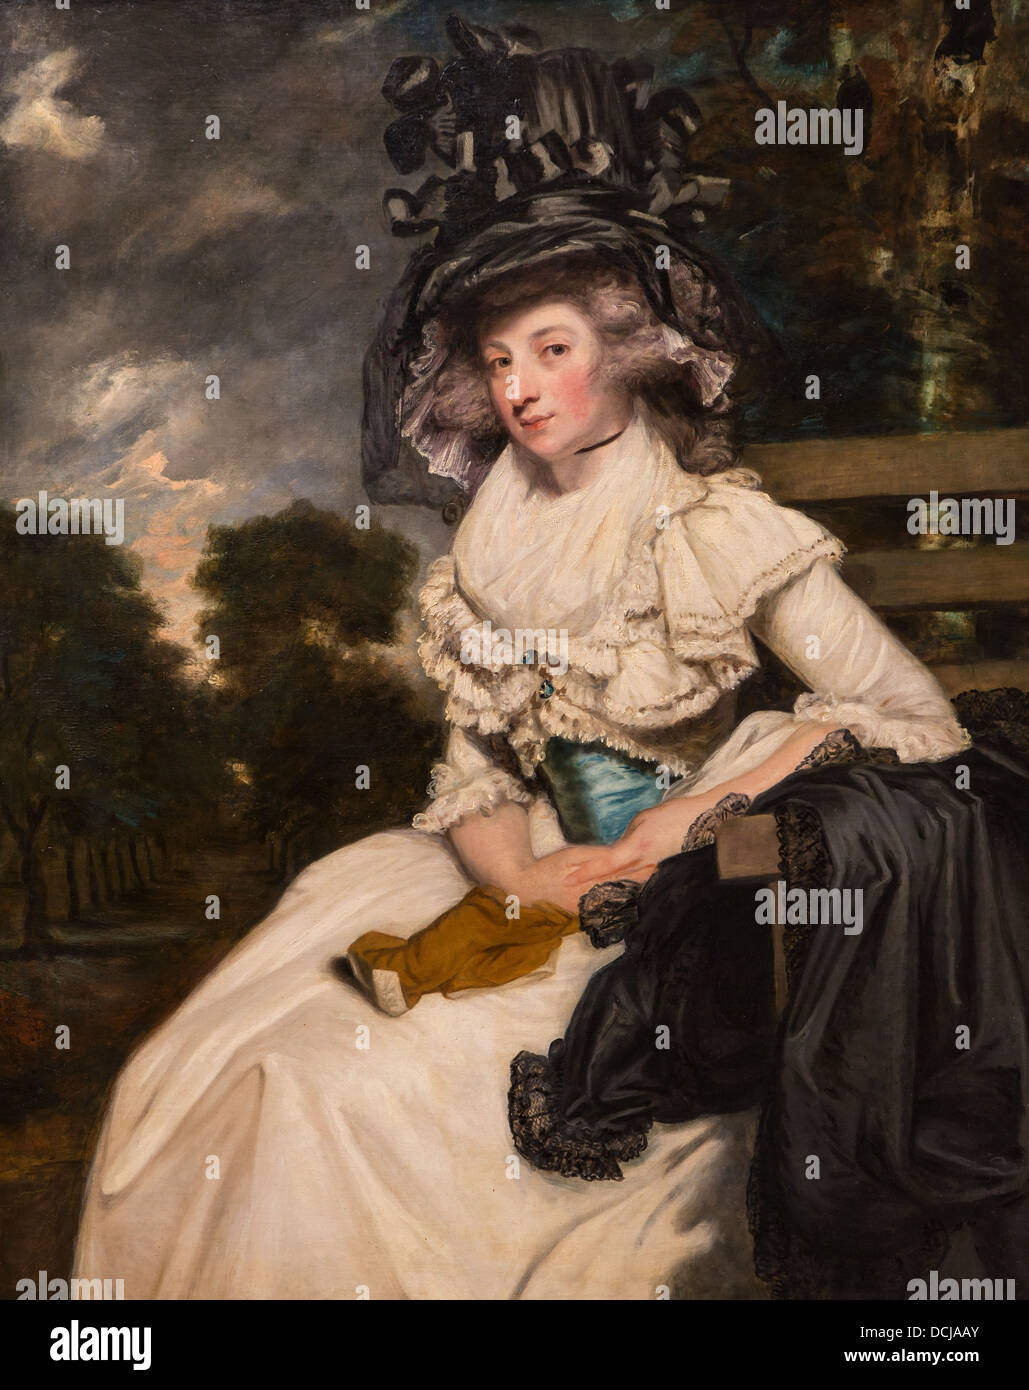 18th century  -  Mlle Lewis Thomas Watson (Mary Elisabeth Milles) - Sir Joshua Reynolds (1789) Oil on canvas - Stock Image